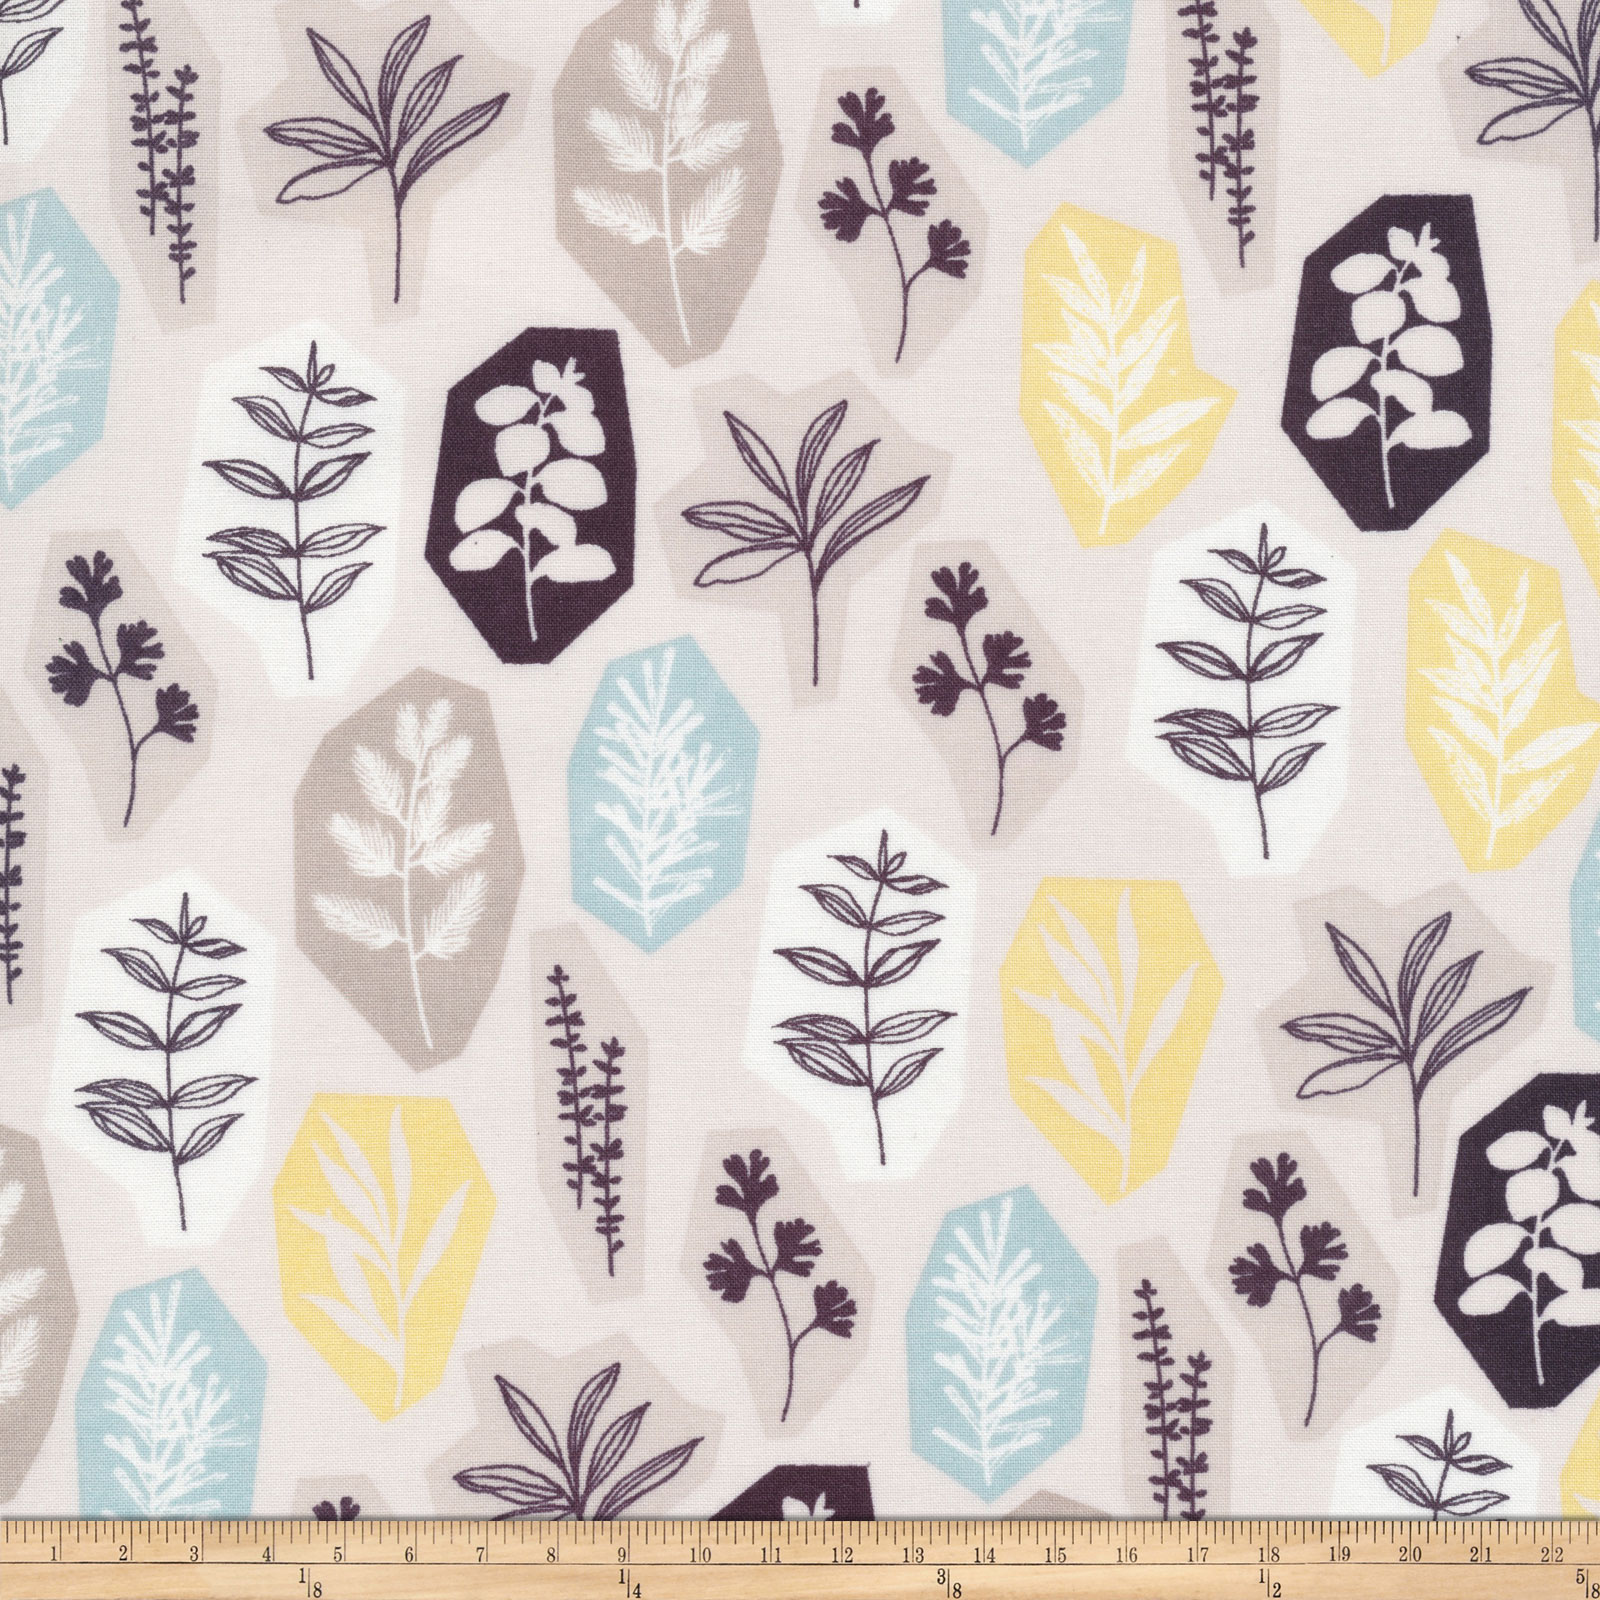 Cloud 9 Organic Sow & Sew Garden Party Blue/gray Fabric